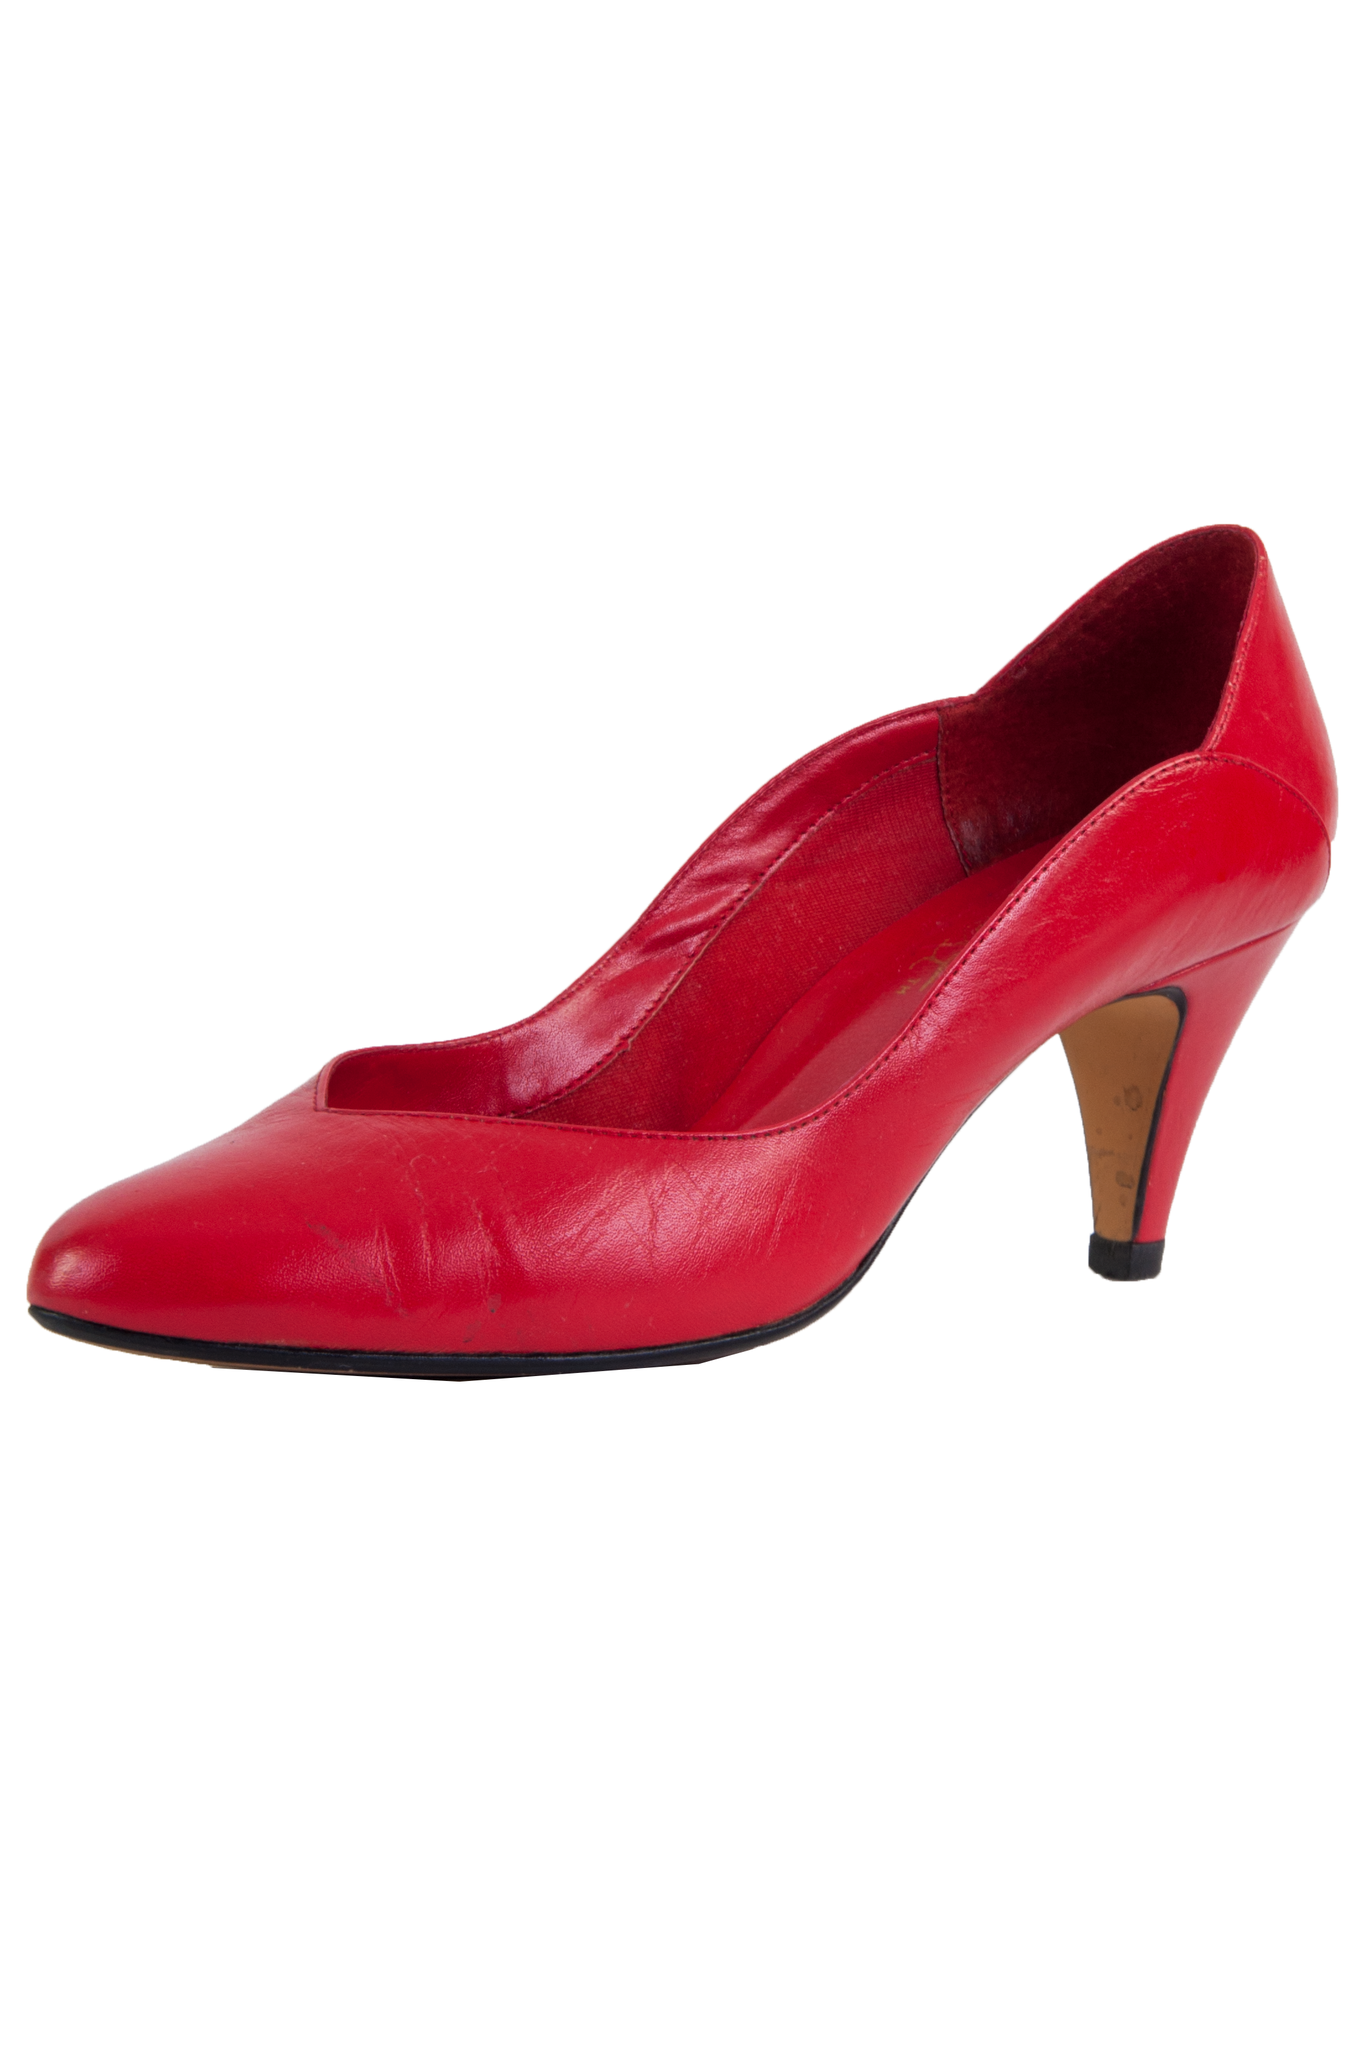 red leather kitten heels with pointed toe and scalloped edge